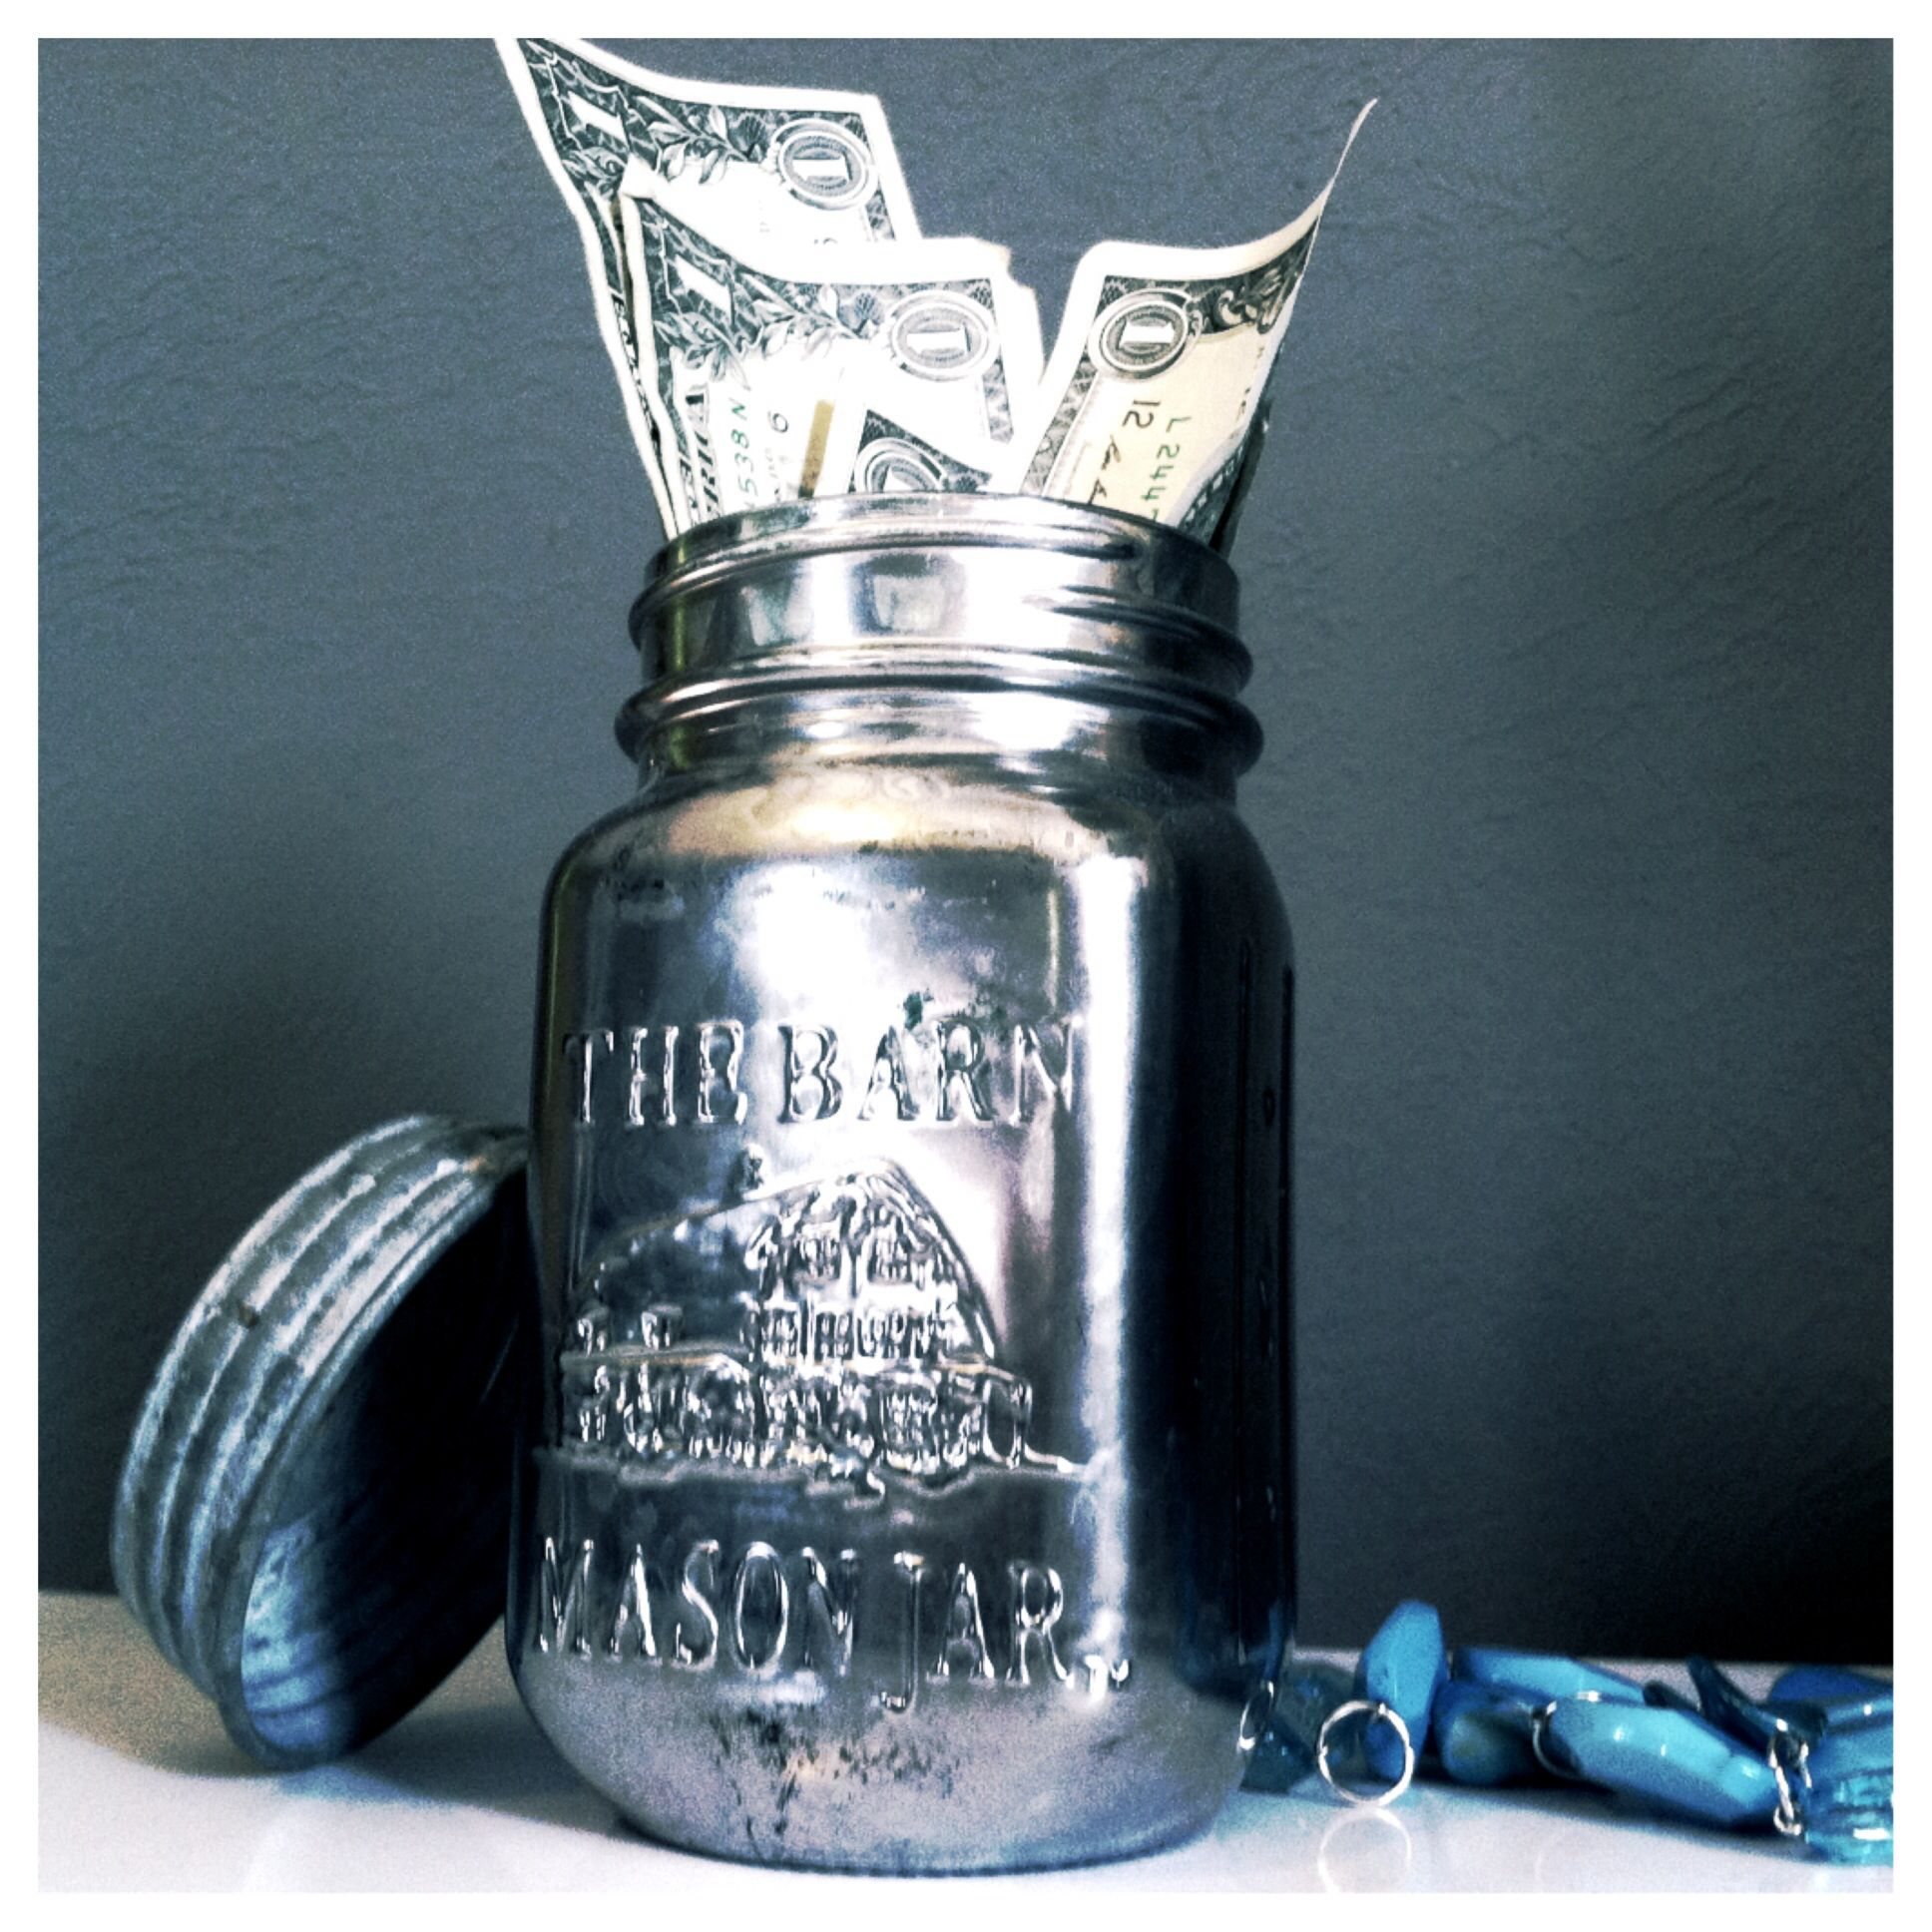 I spray painted an old candle and decided to use it as a piggy bank.  It was super easy and my money is hidden.